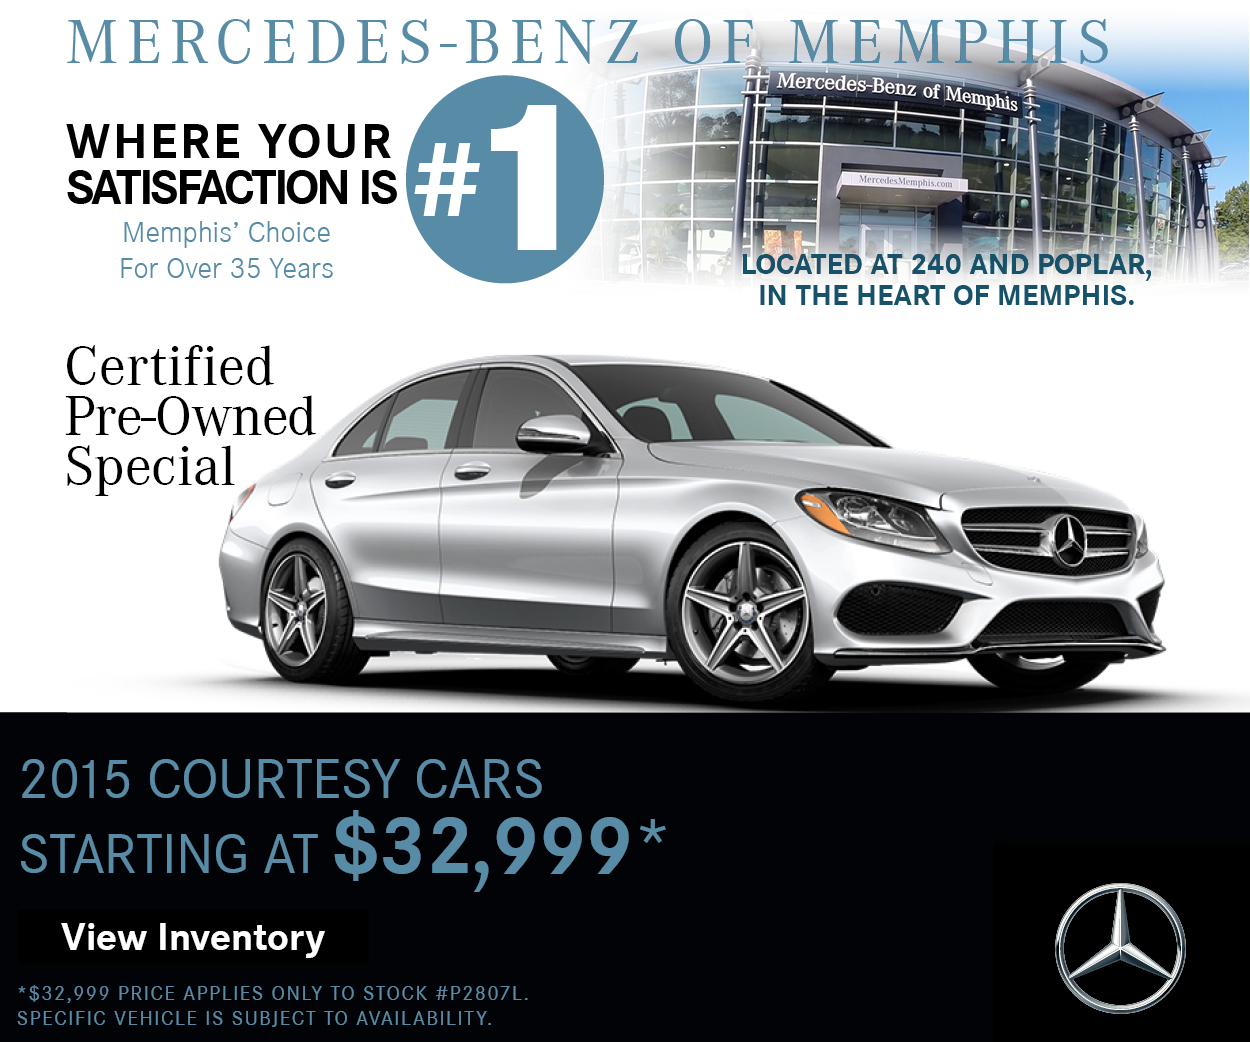 2015 courtesy car specials mercedes benz of memphis for Mercedes benz roadside assistance phone number